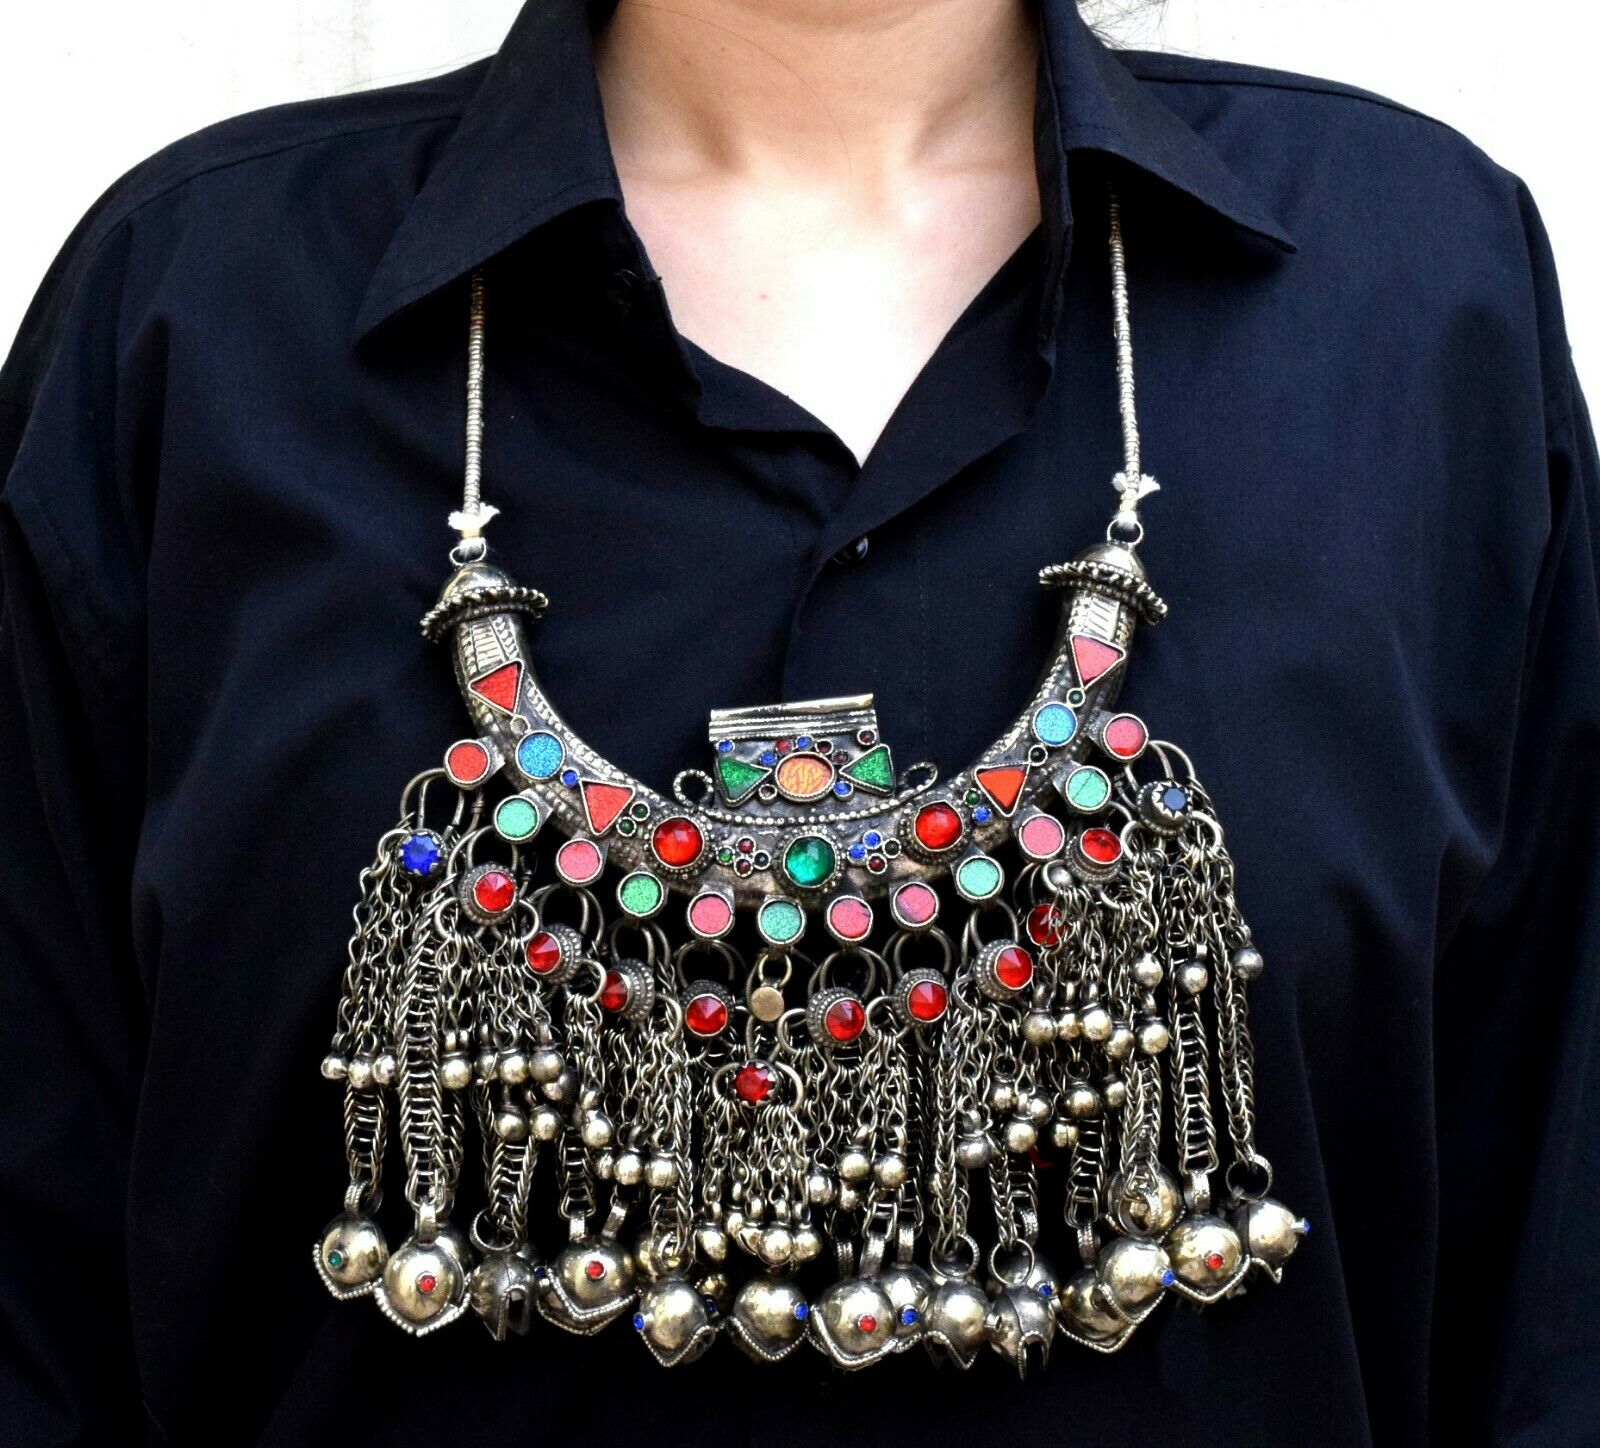 Rare afghan kuchi pendant necklace tribal boho belly dance ethnic 1 of 4only 1 available aloadofball Images